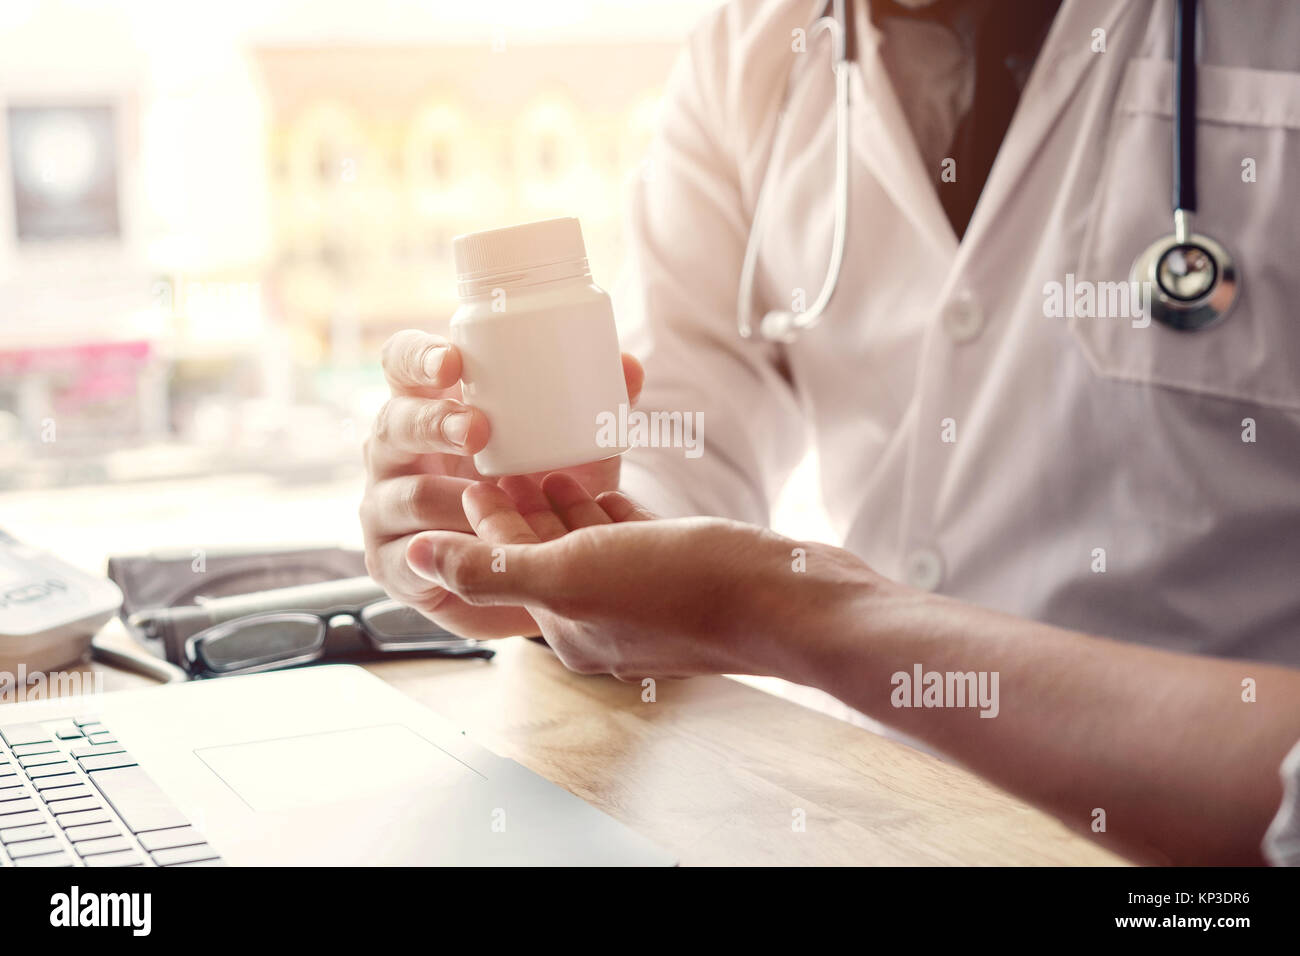 Doctor or physician recommend pills medical prescription to male Patient - Stock Image